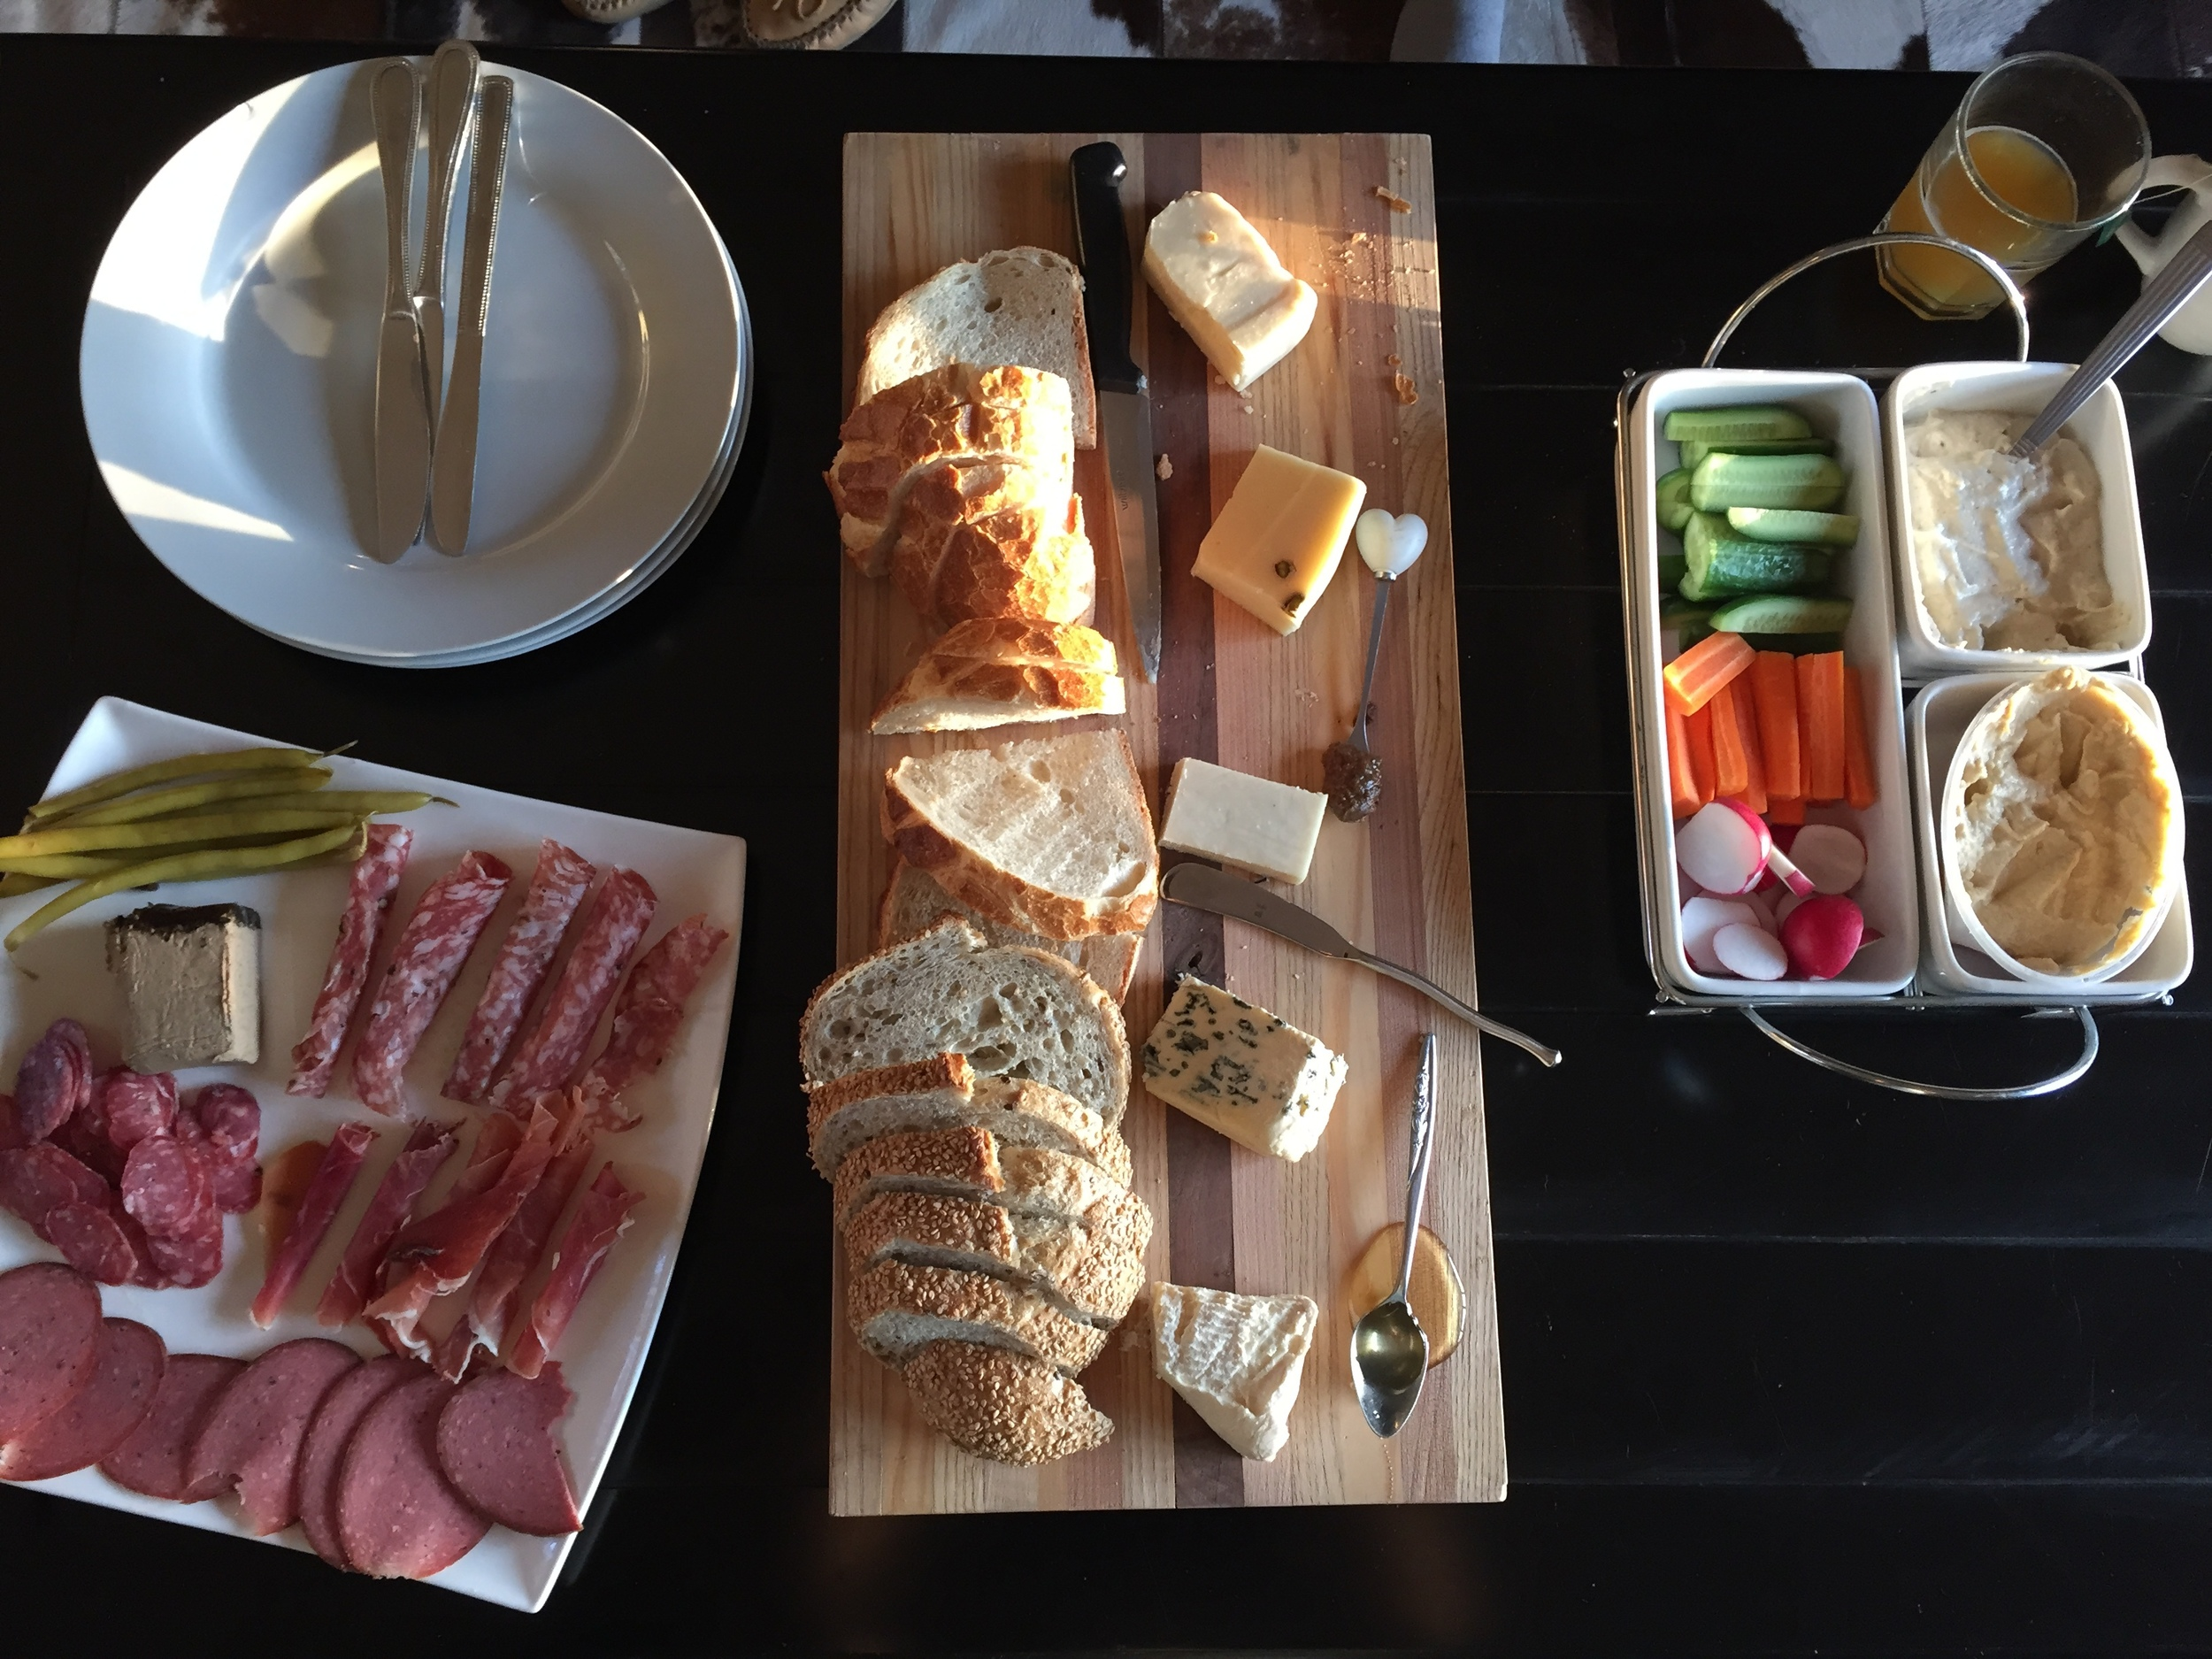 Cheese and charcuterie spread